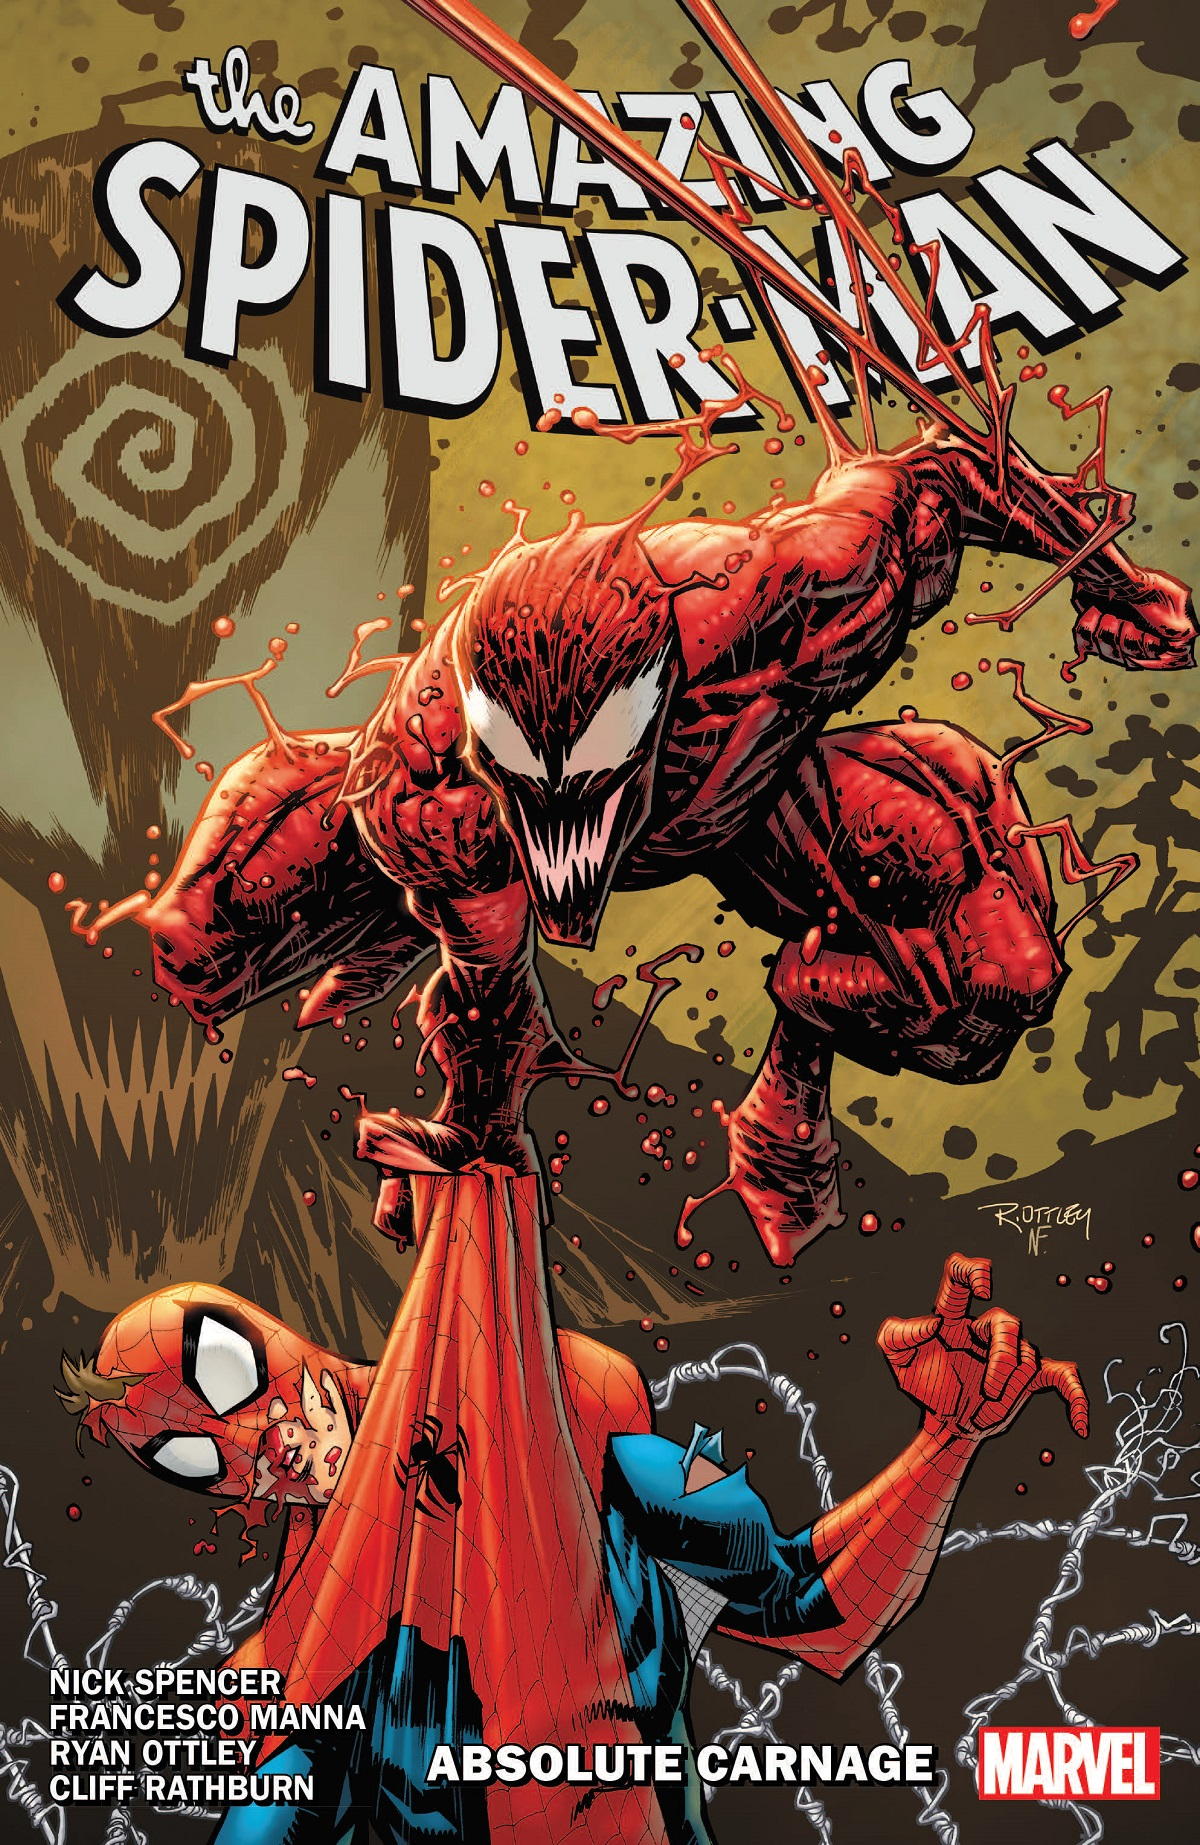 Amazing Spider-Man by Nick Spencer Vol. 6: Absolute Carnage (Trade Paperback)